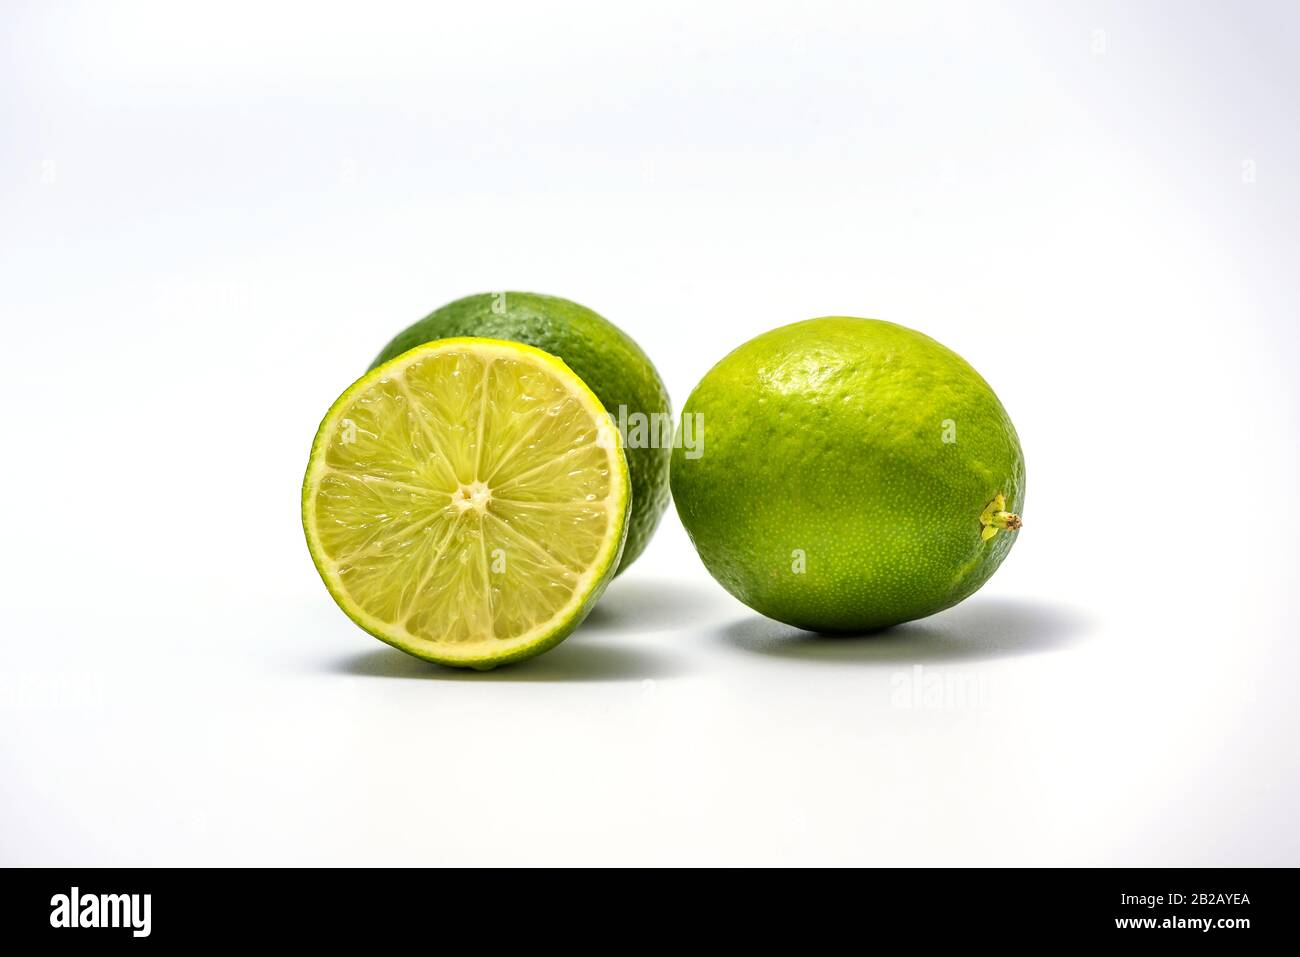 Lime Wedge Isolated High Resolution Stock Photography And Images Alamy